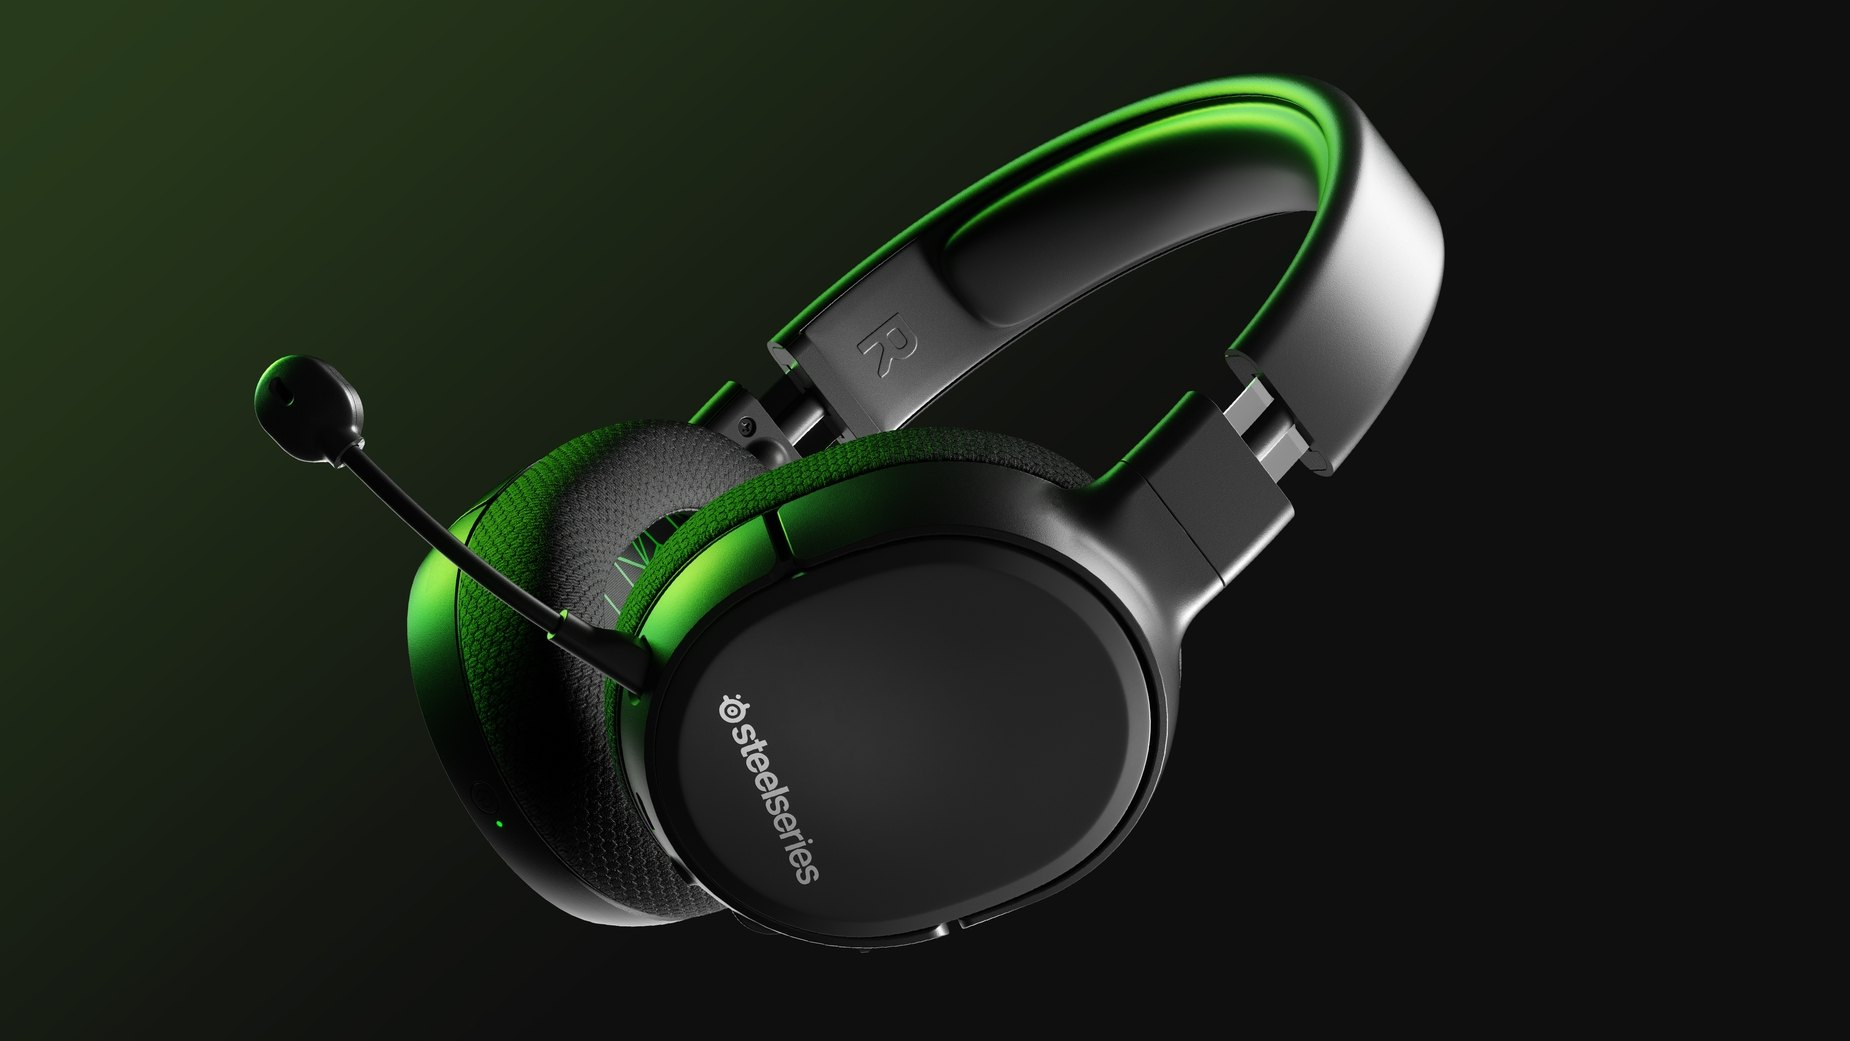 Arctis 1 Wireless for Xbox gaming headset on a table.